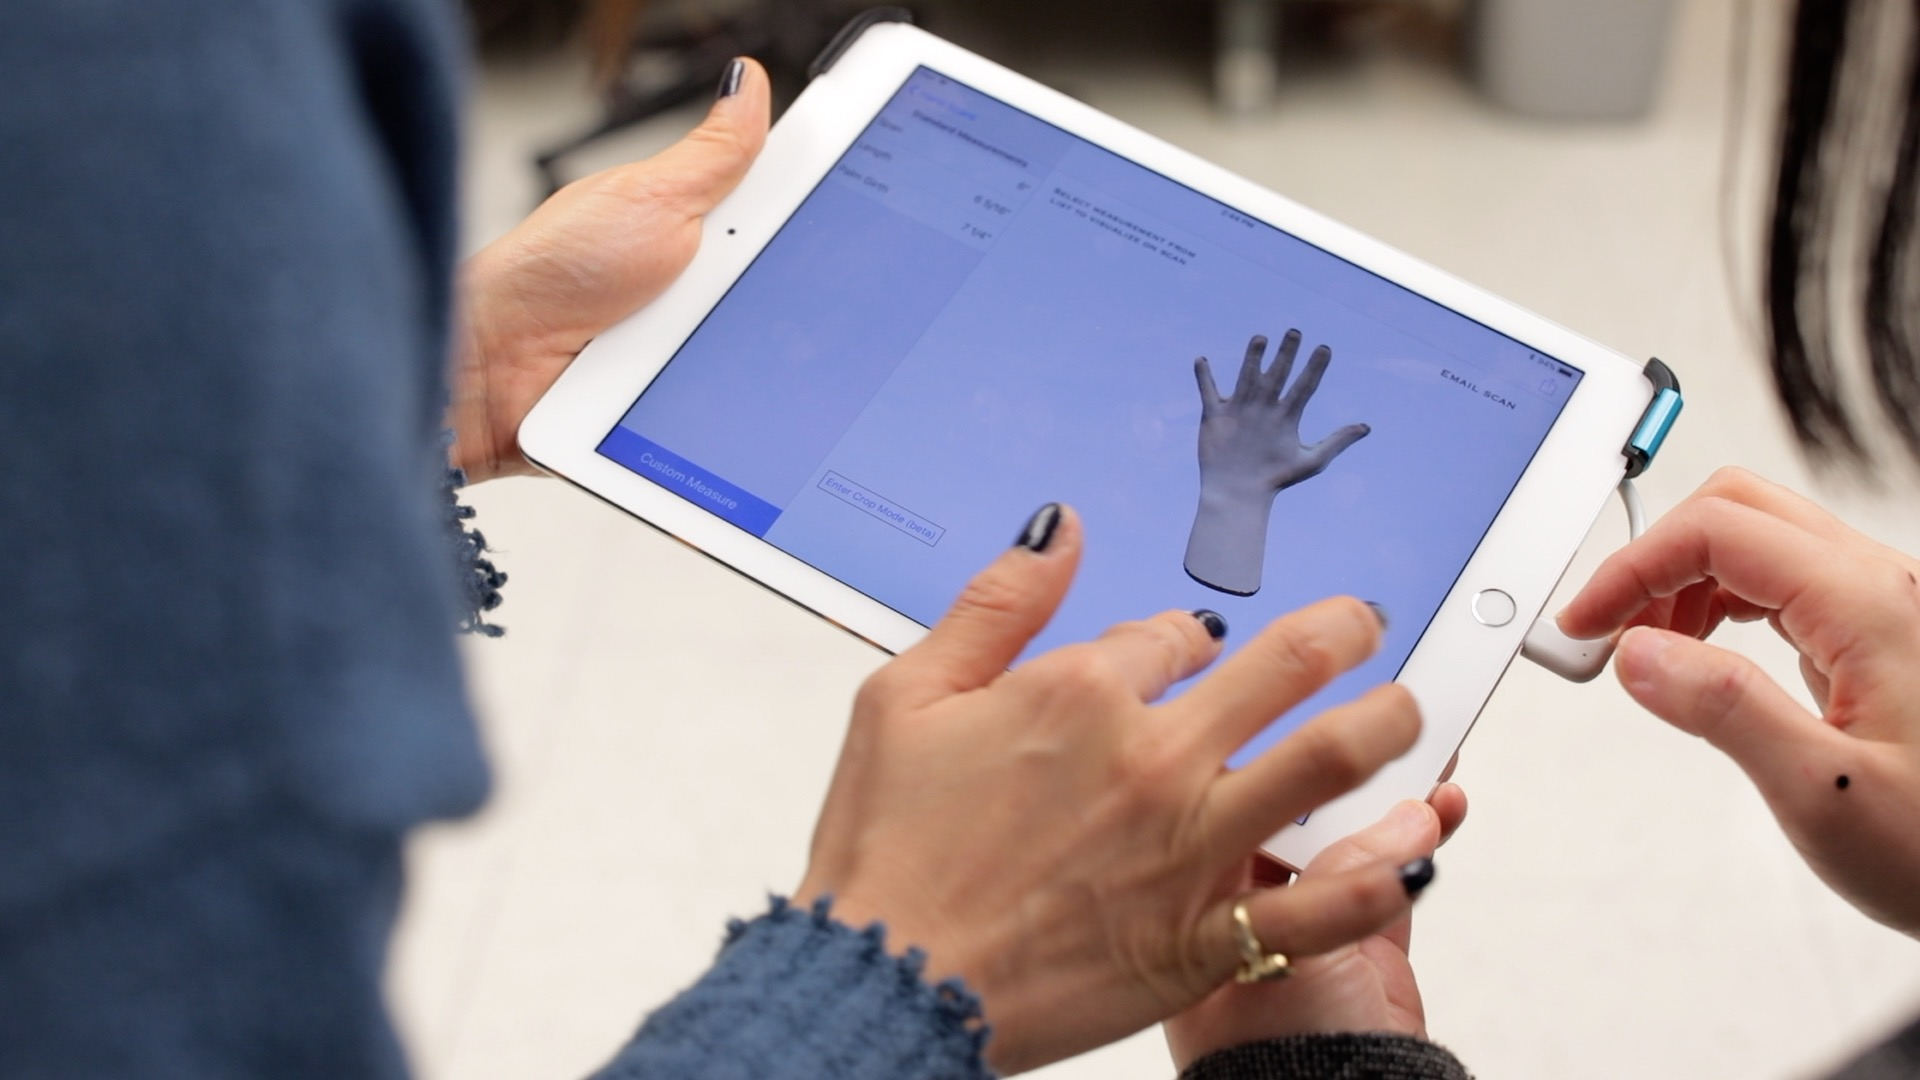 Close up of hands holding an iPad displaying research